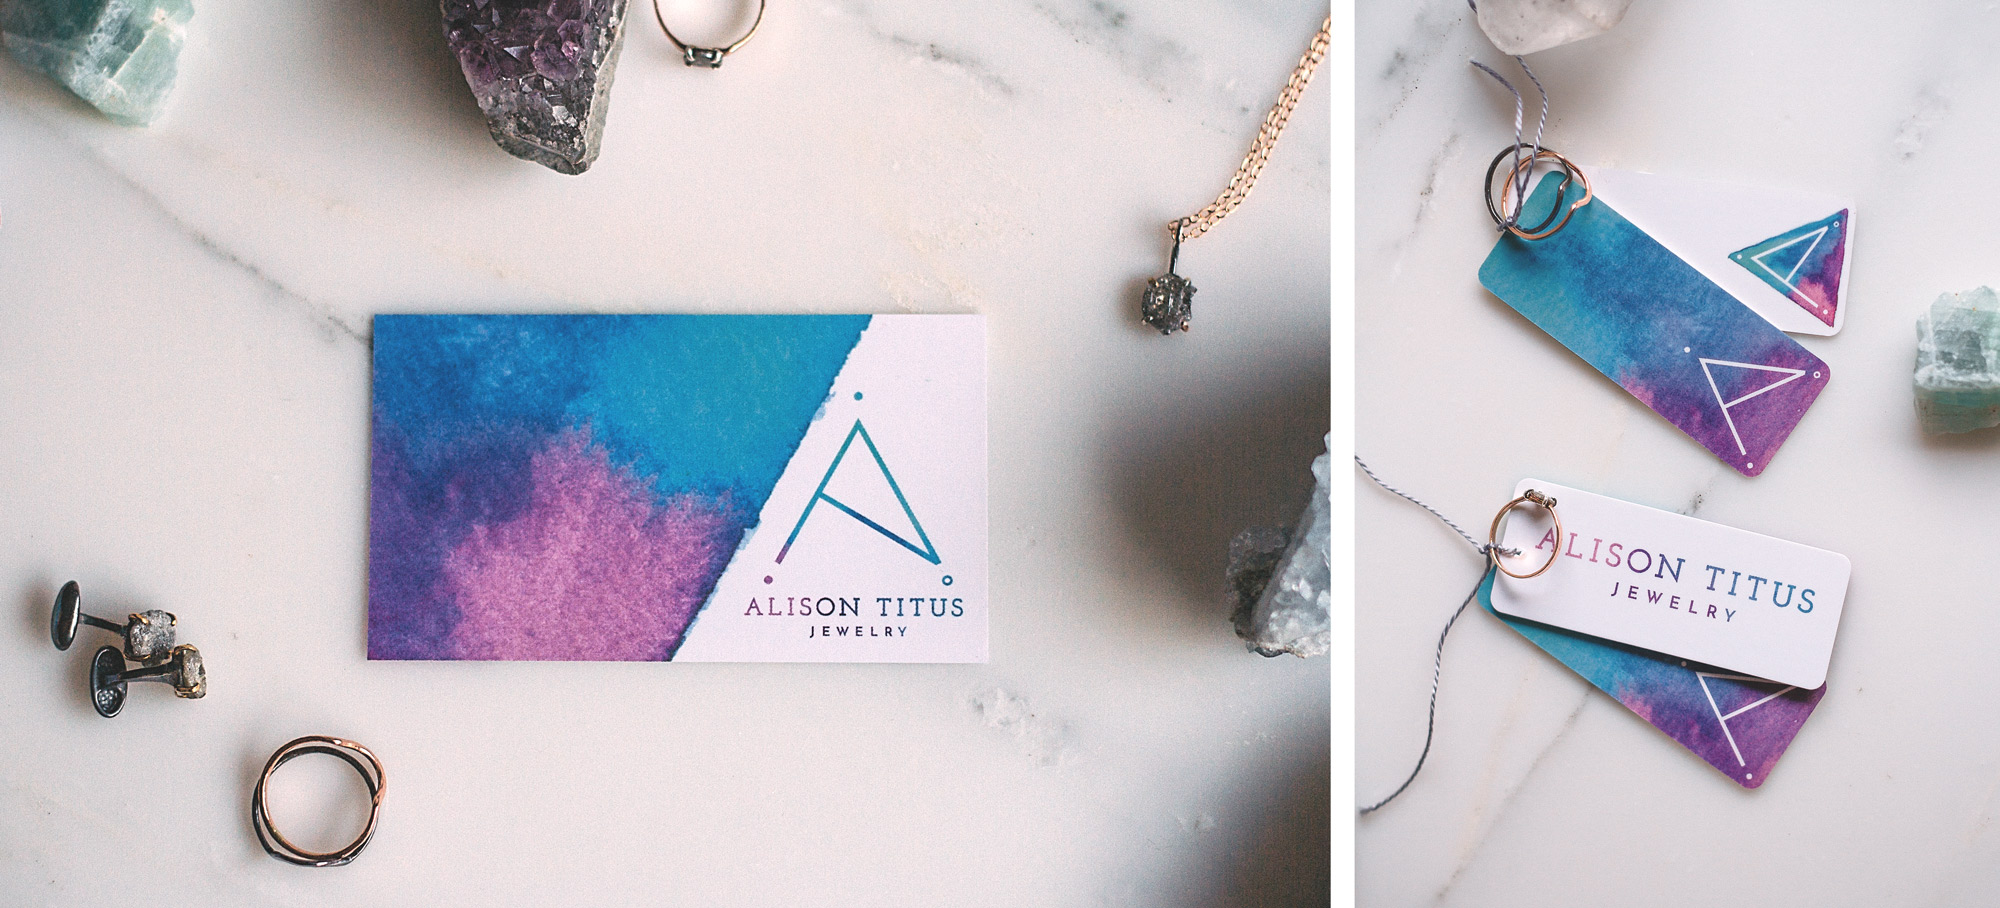 alison titus jewelry business card and jewelry tags surrounded by jewelry and gemstones